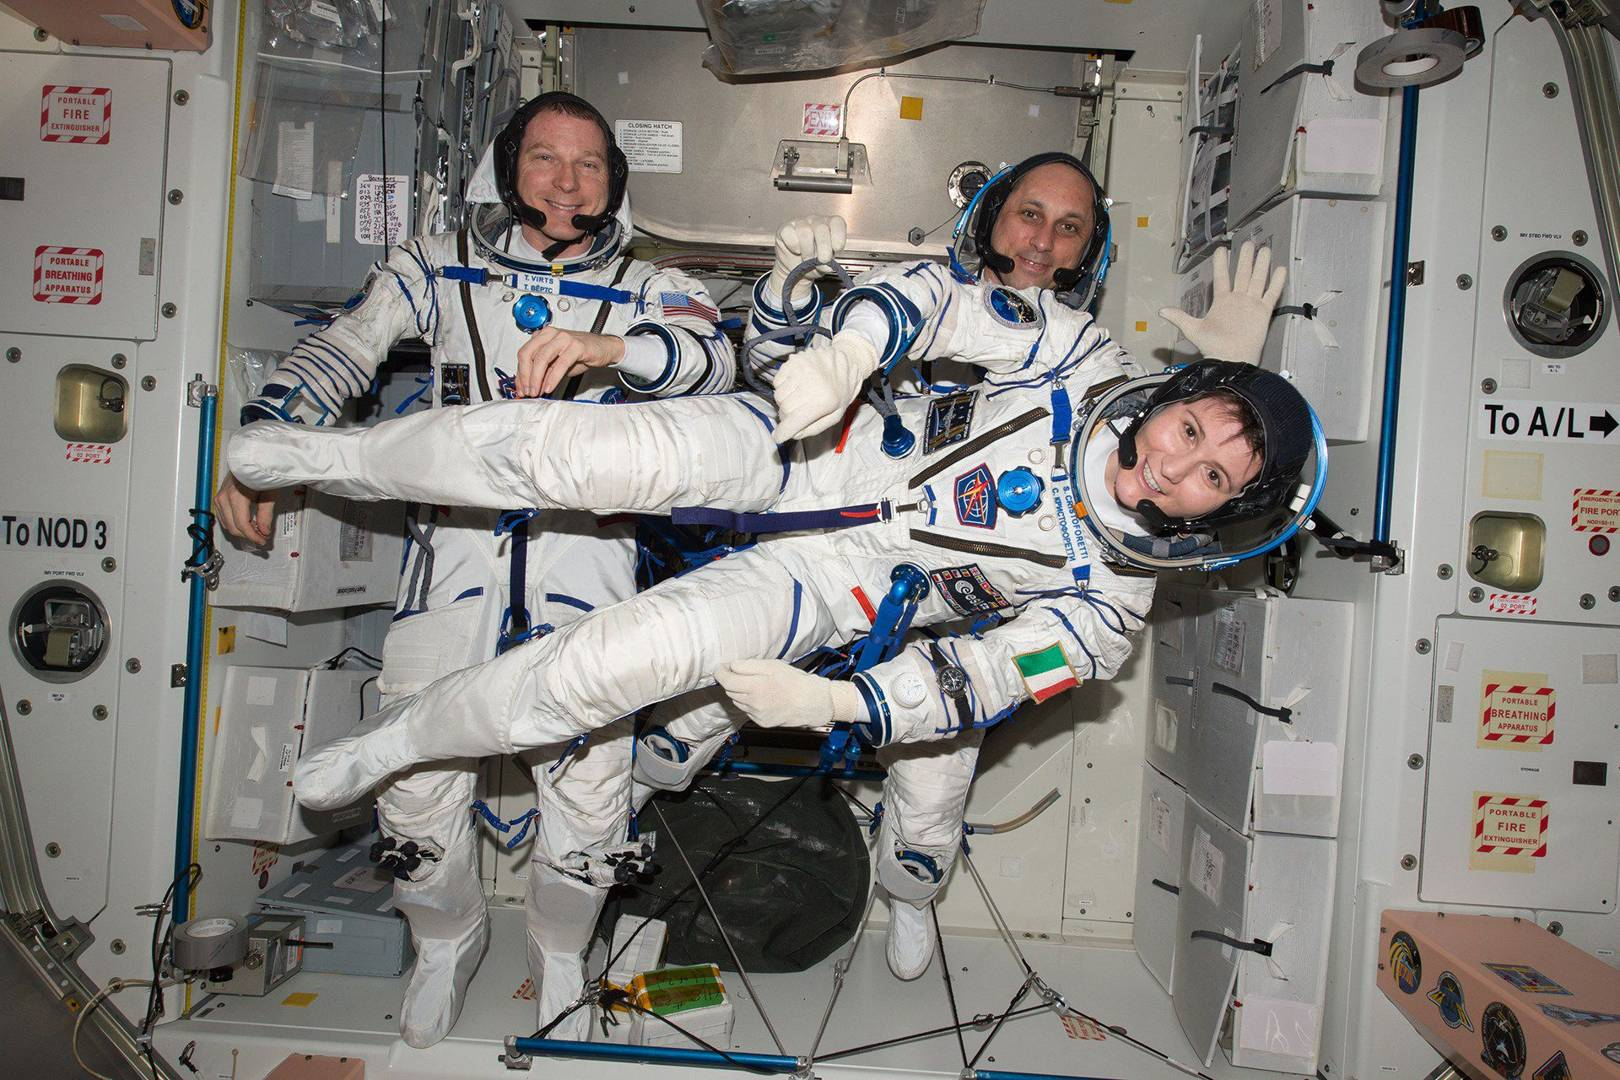 Samantha Cristoforetti S Most Memorable Moments Aboard The ISS